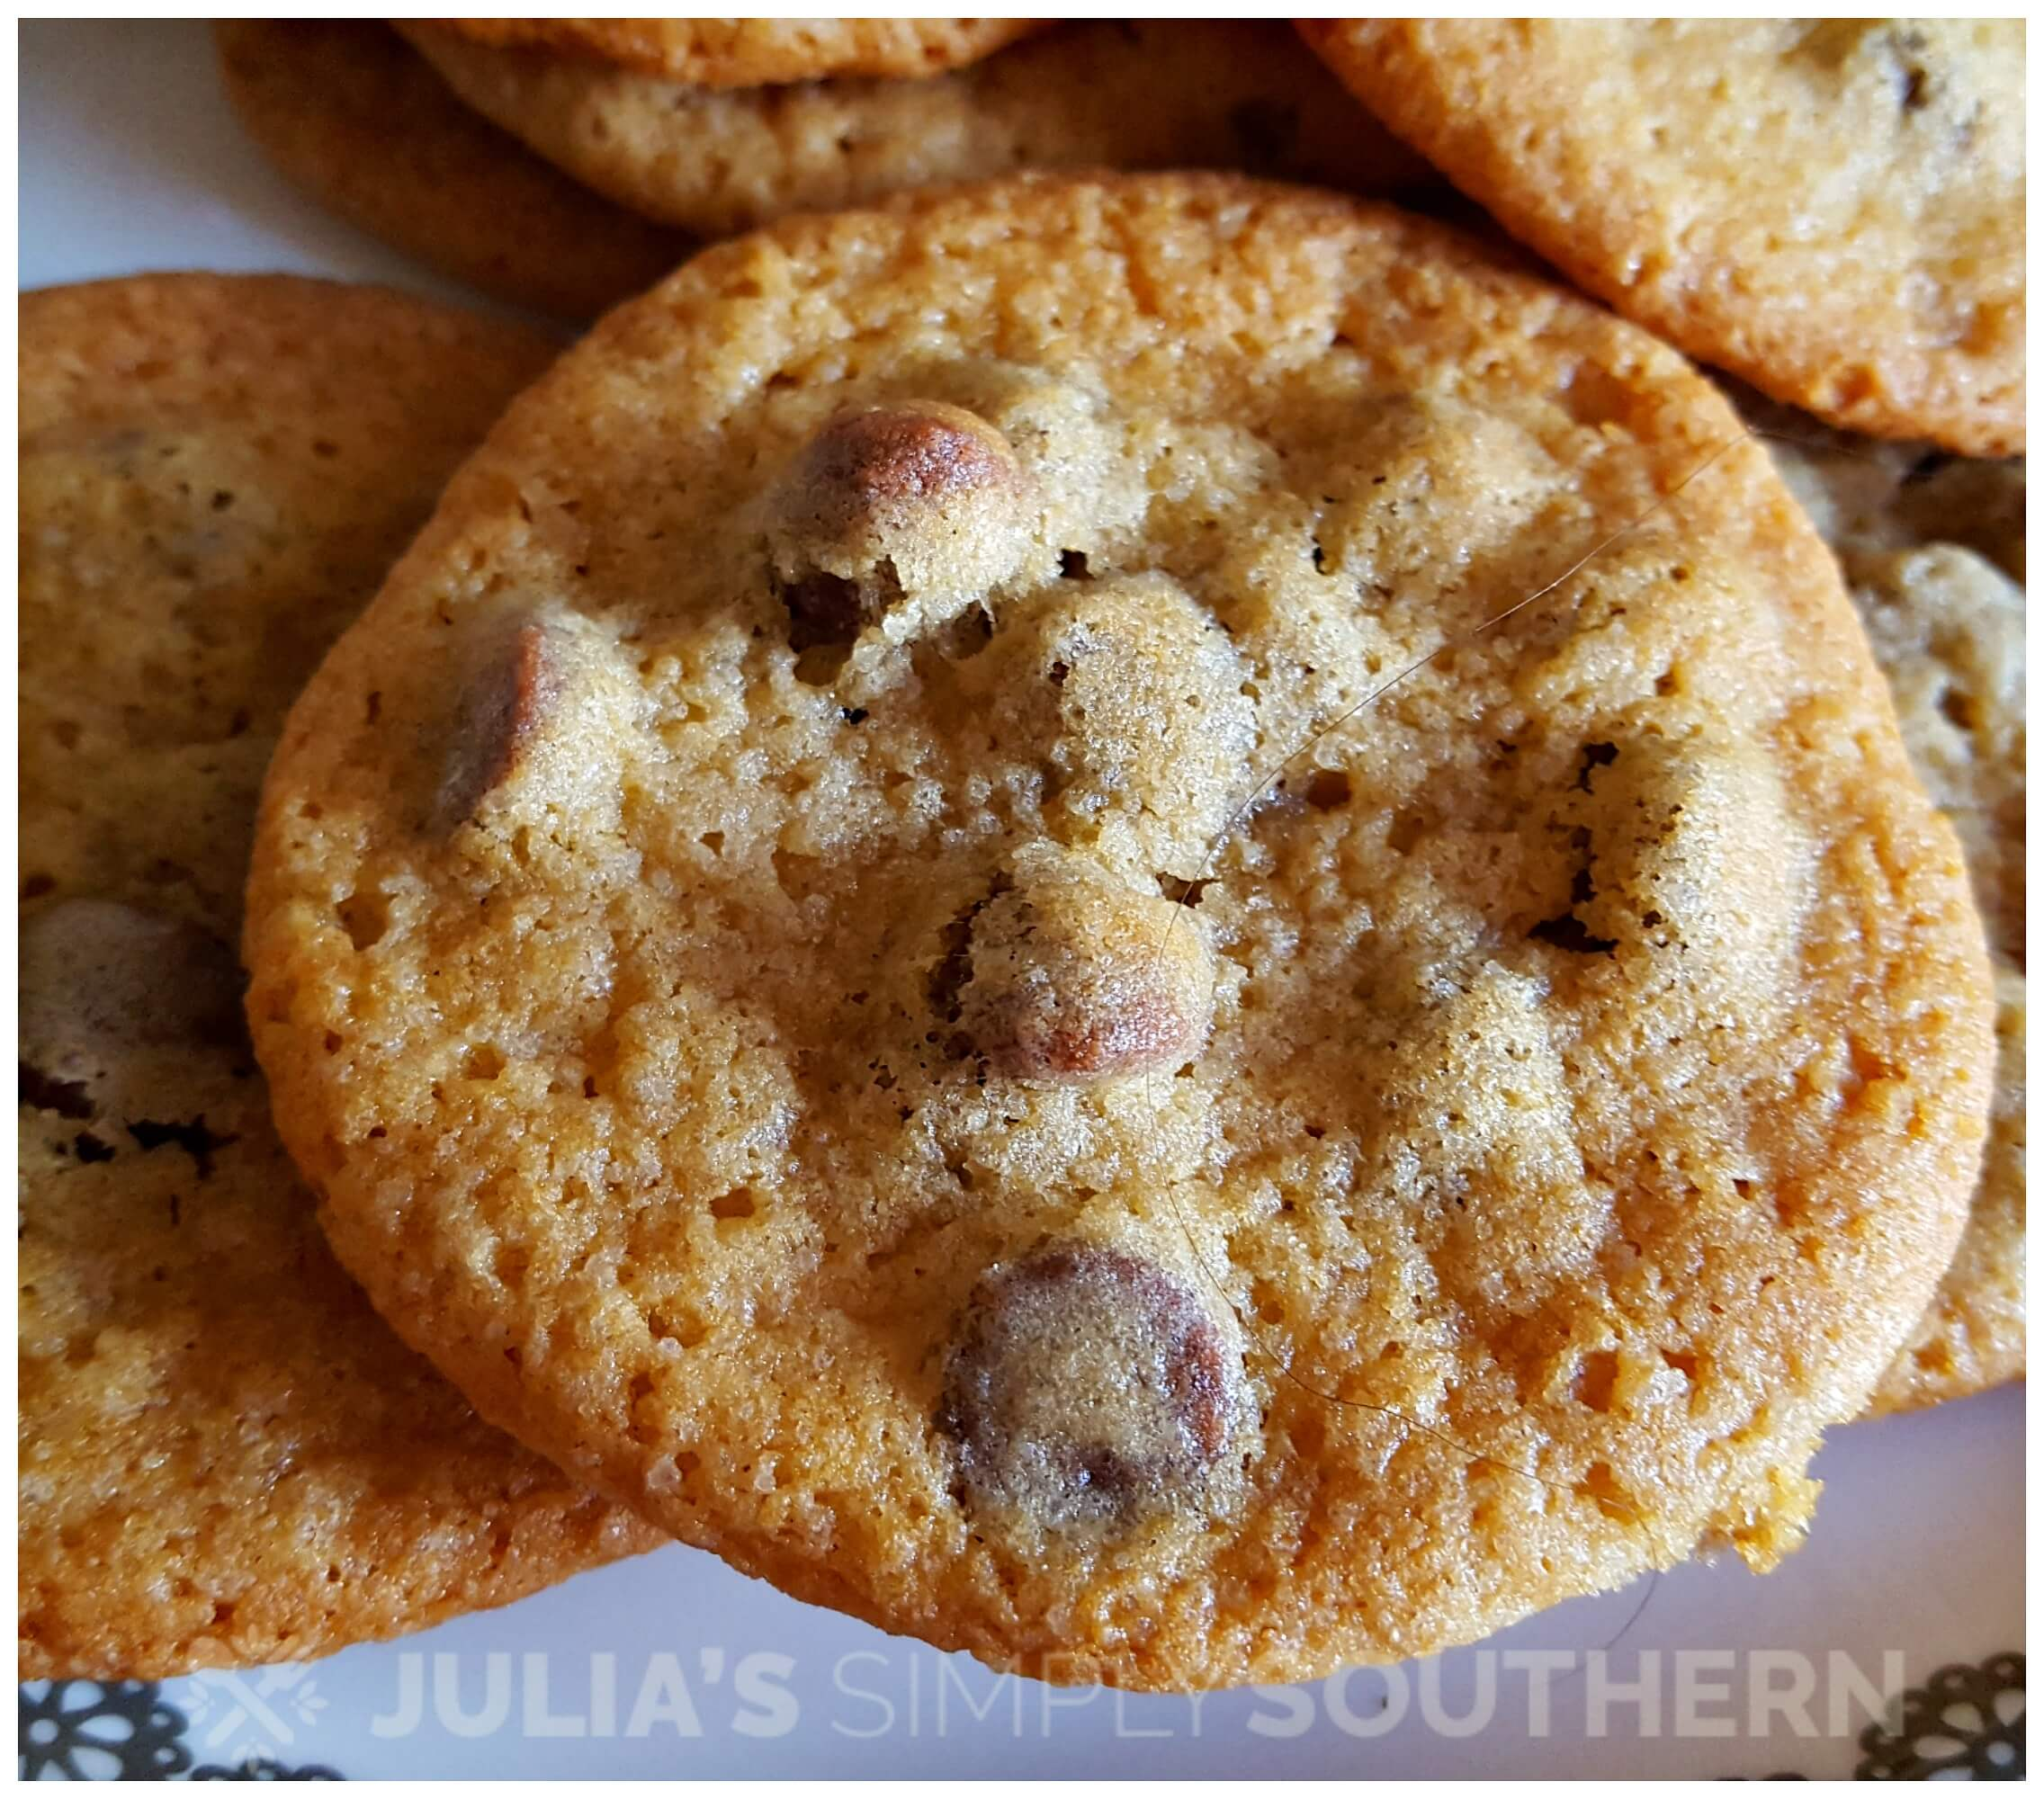 Original Chocolate Chip Cookies invented by Ruth Wakefield